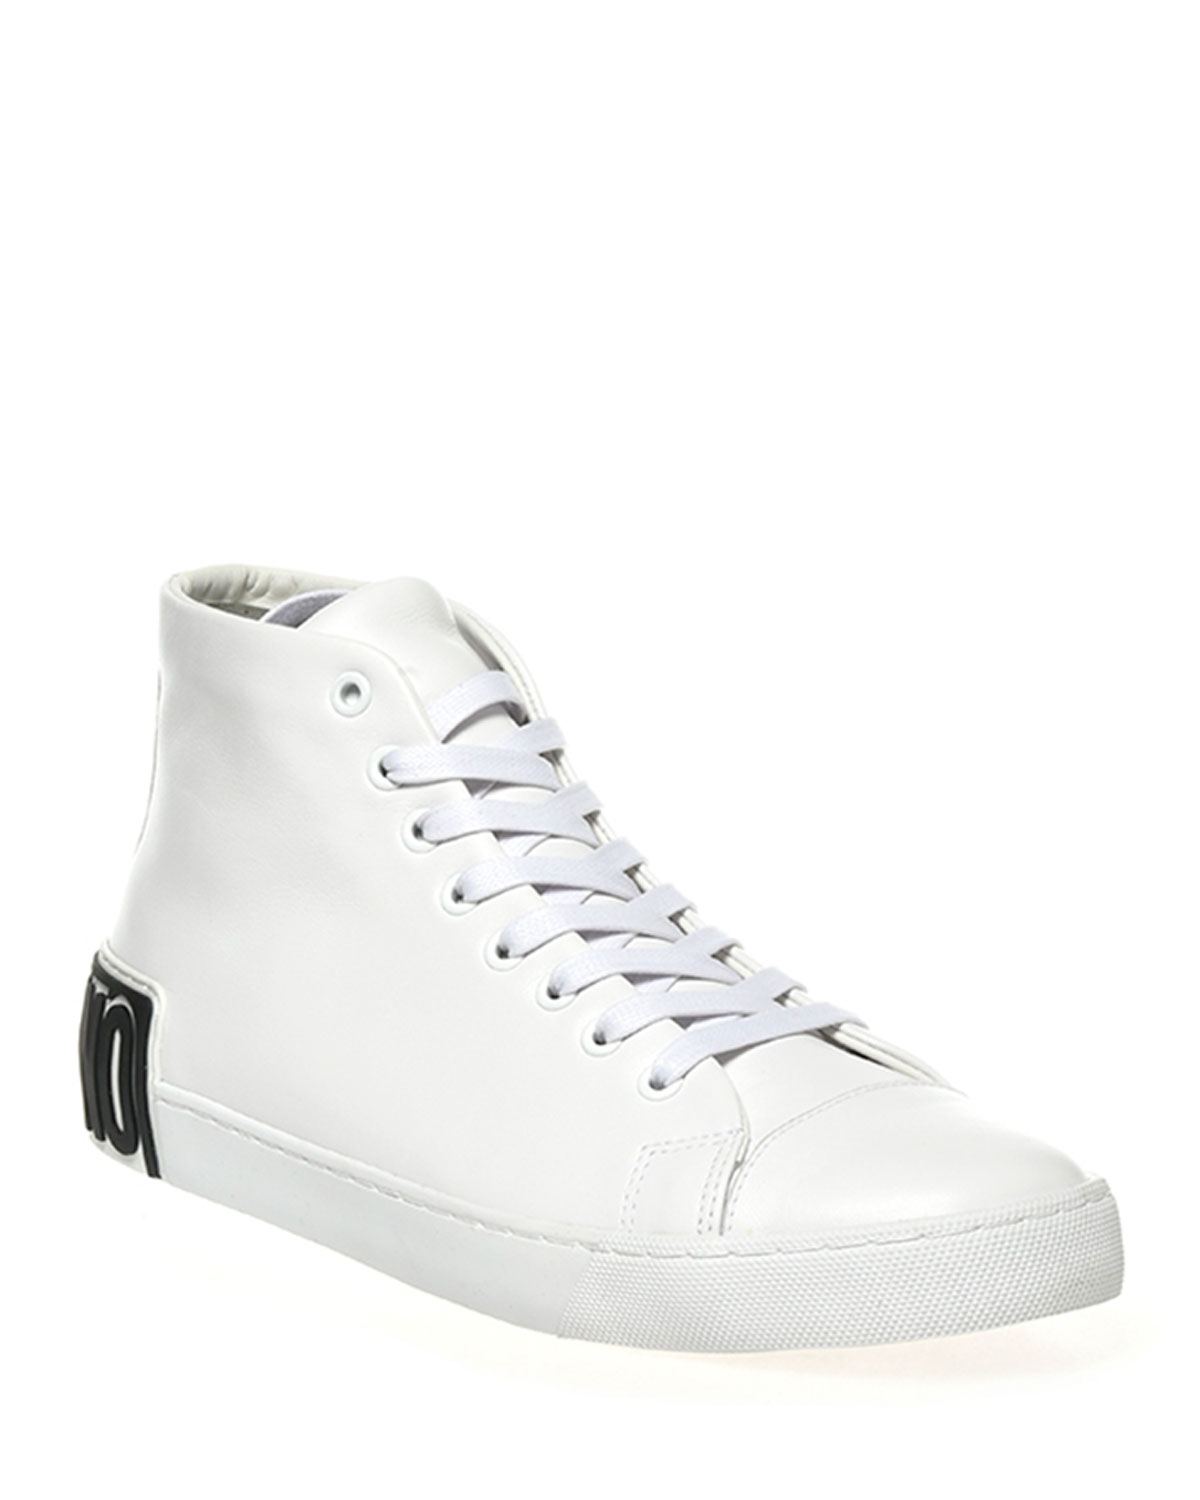 Men's Logo Leather High-Top Sneakers